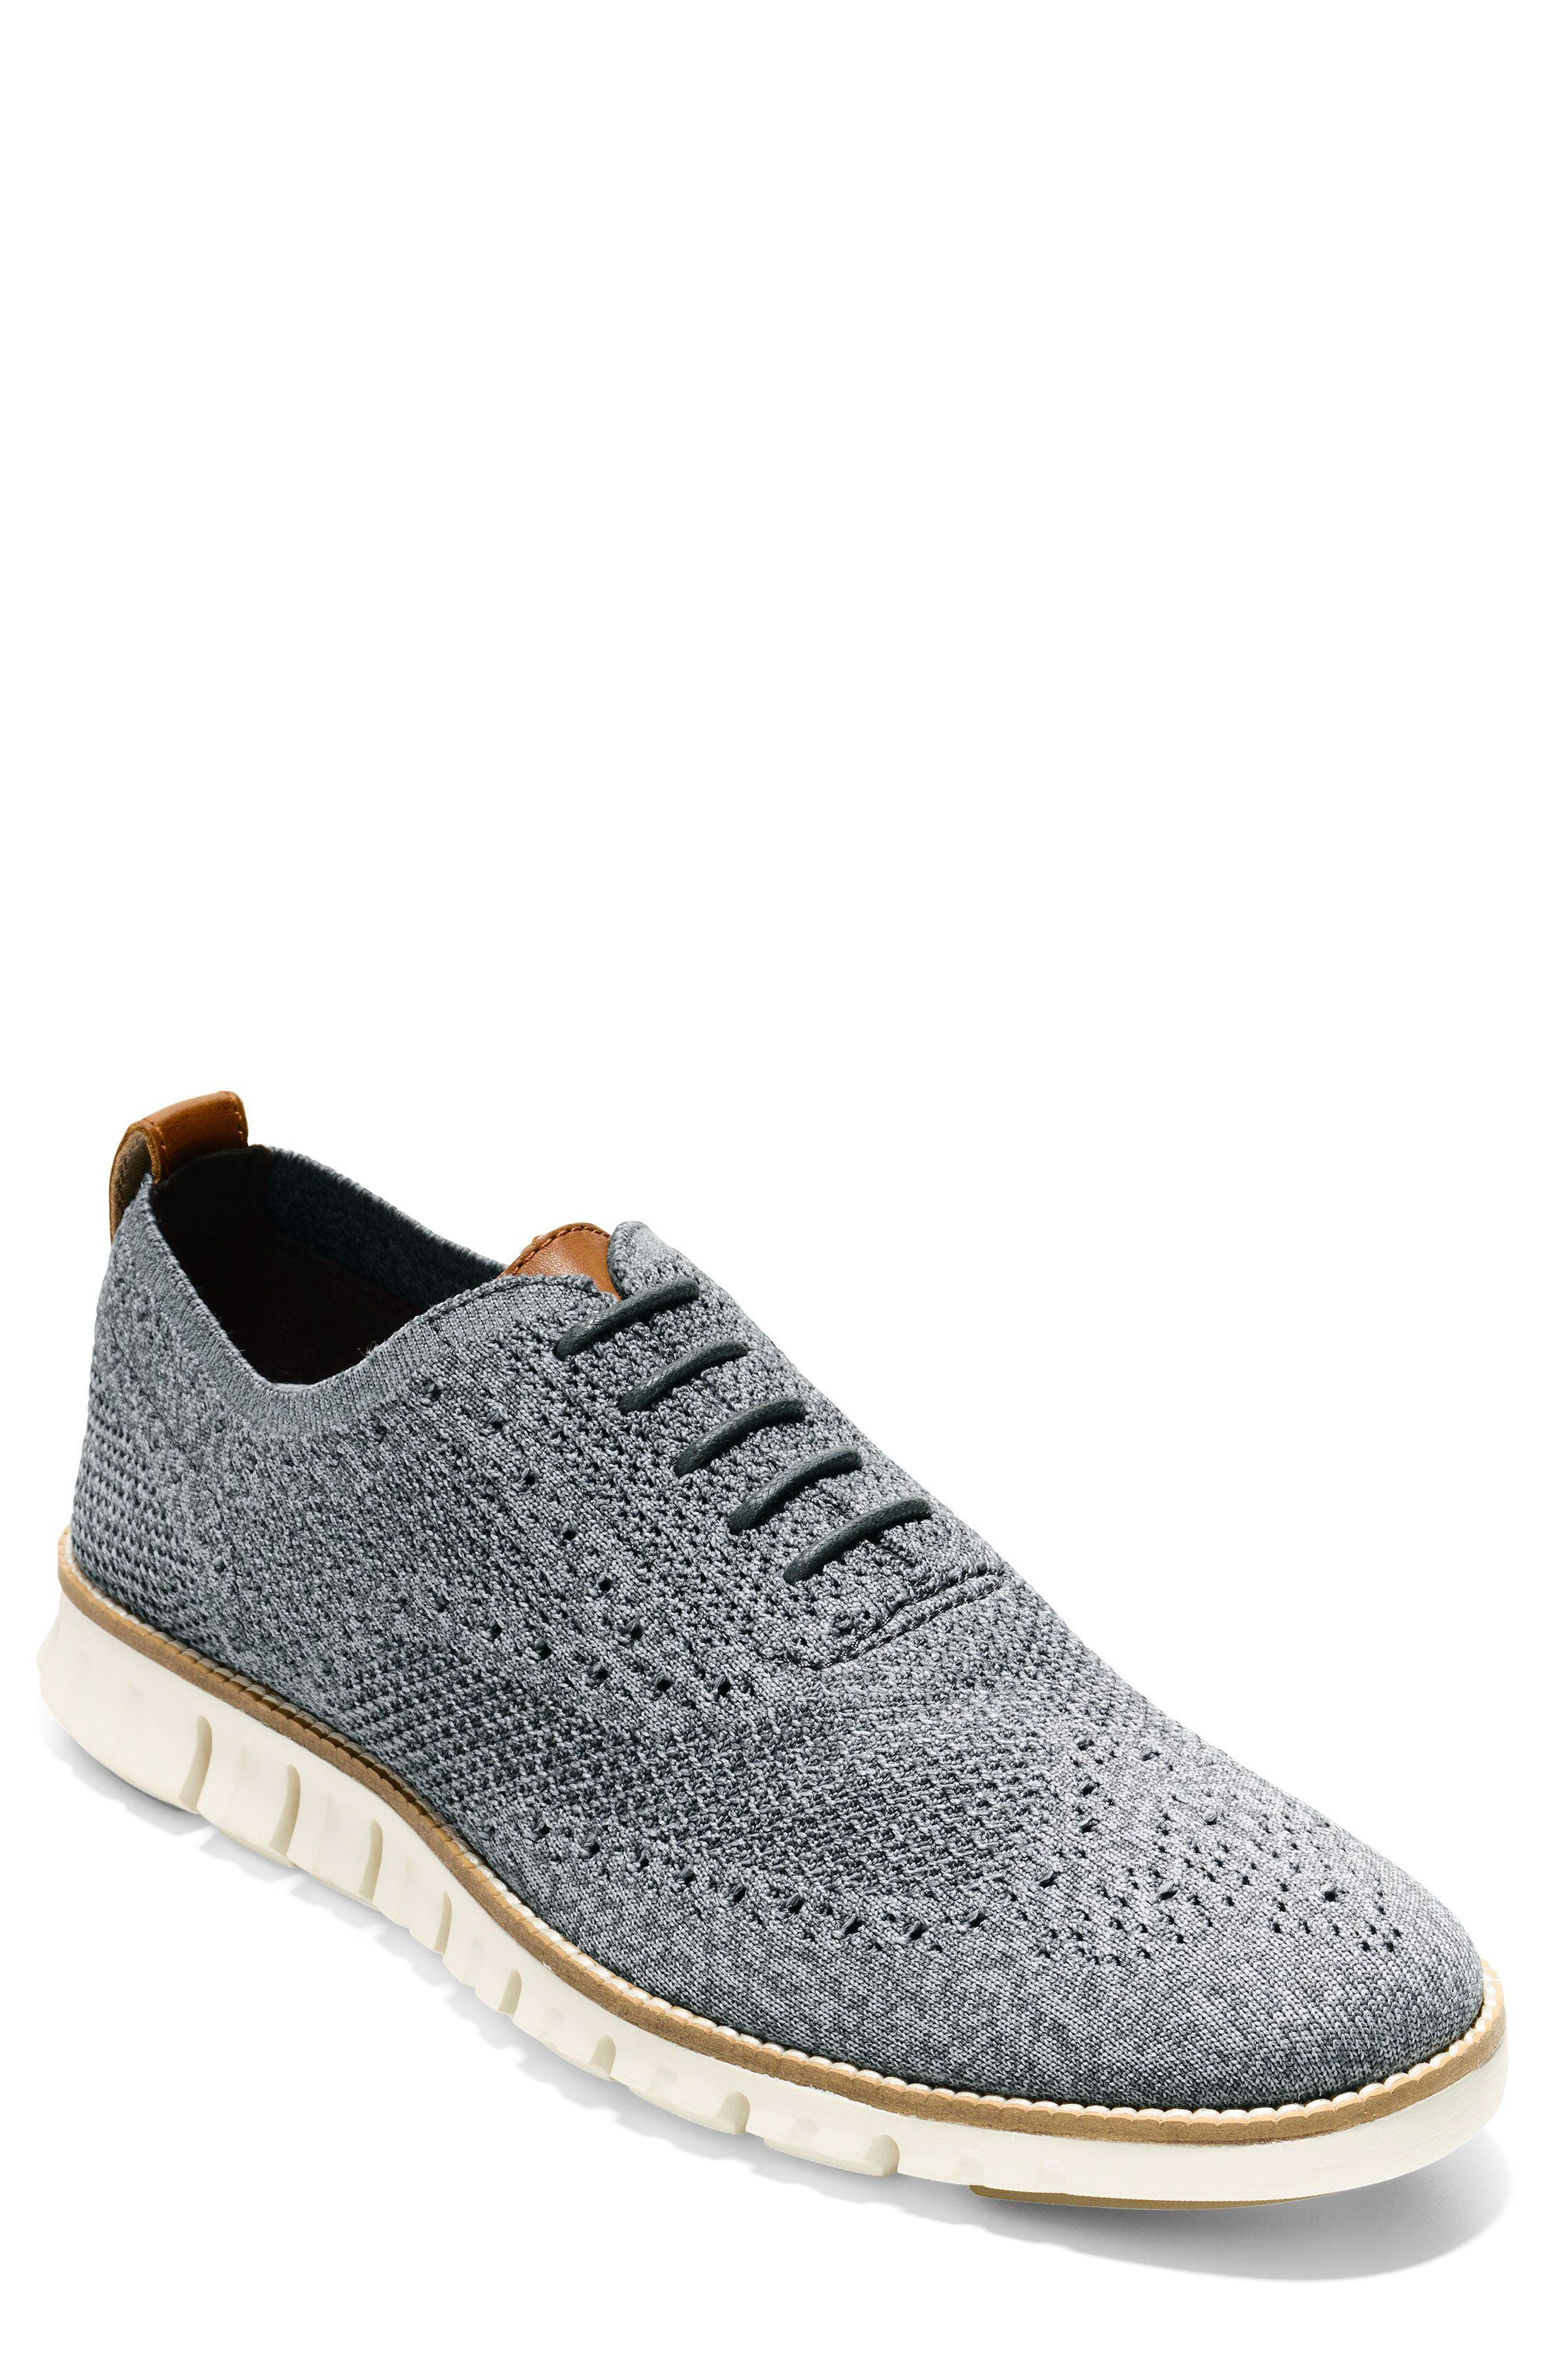 ZeroGrand Stitchlite Woven Wool Wingtip,                         Main,                         color, IRONSTONE/ MAGNET/ IVORY